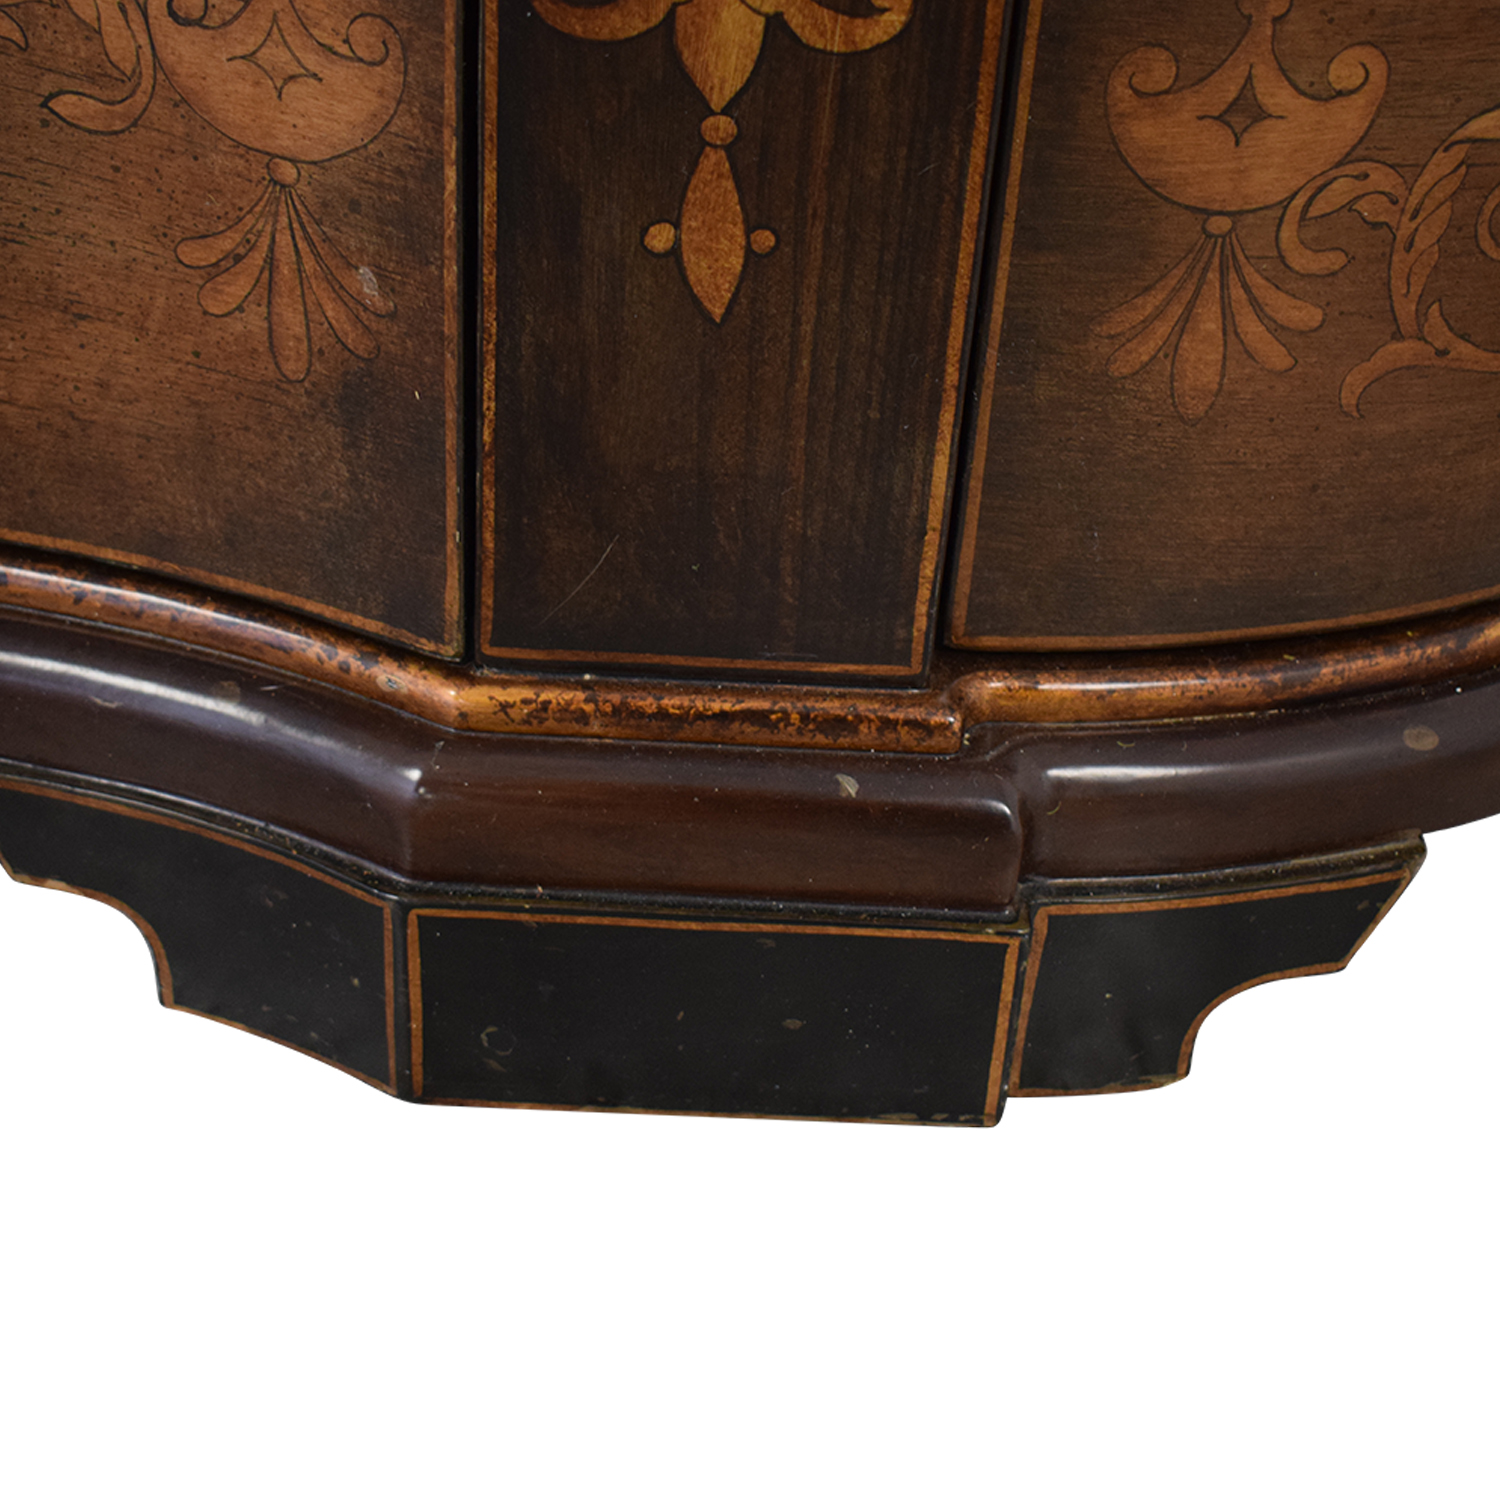 Cabinet with Curved Doors used